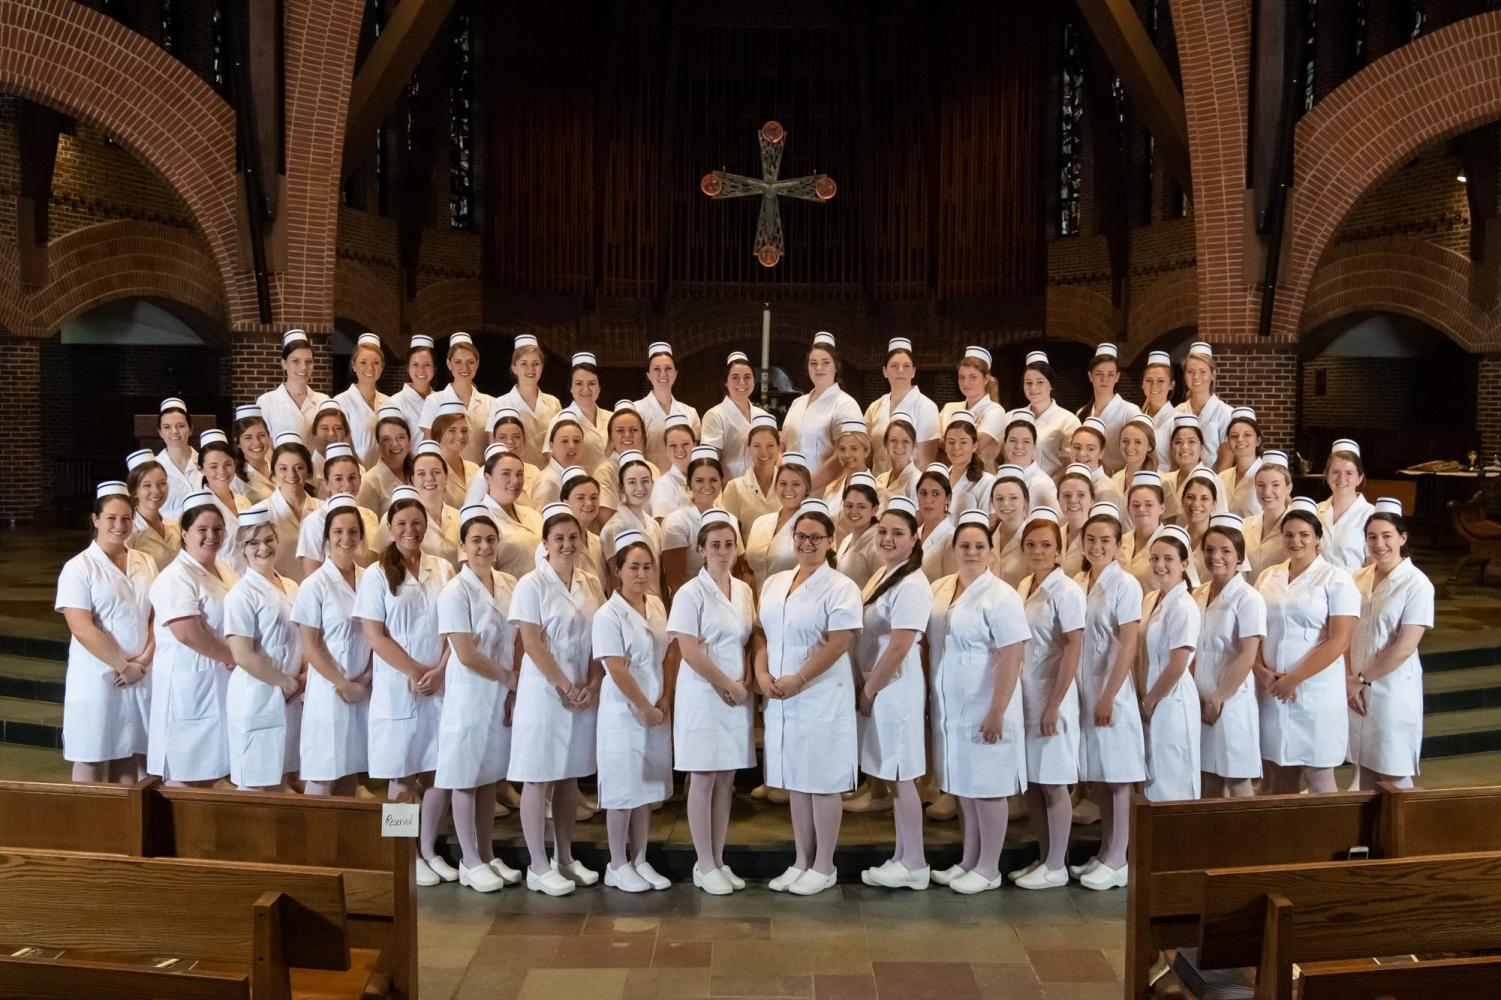 Sixty-nine senior student nurses received their pins on April 27, symbolizing their transition into professional nursing.